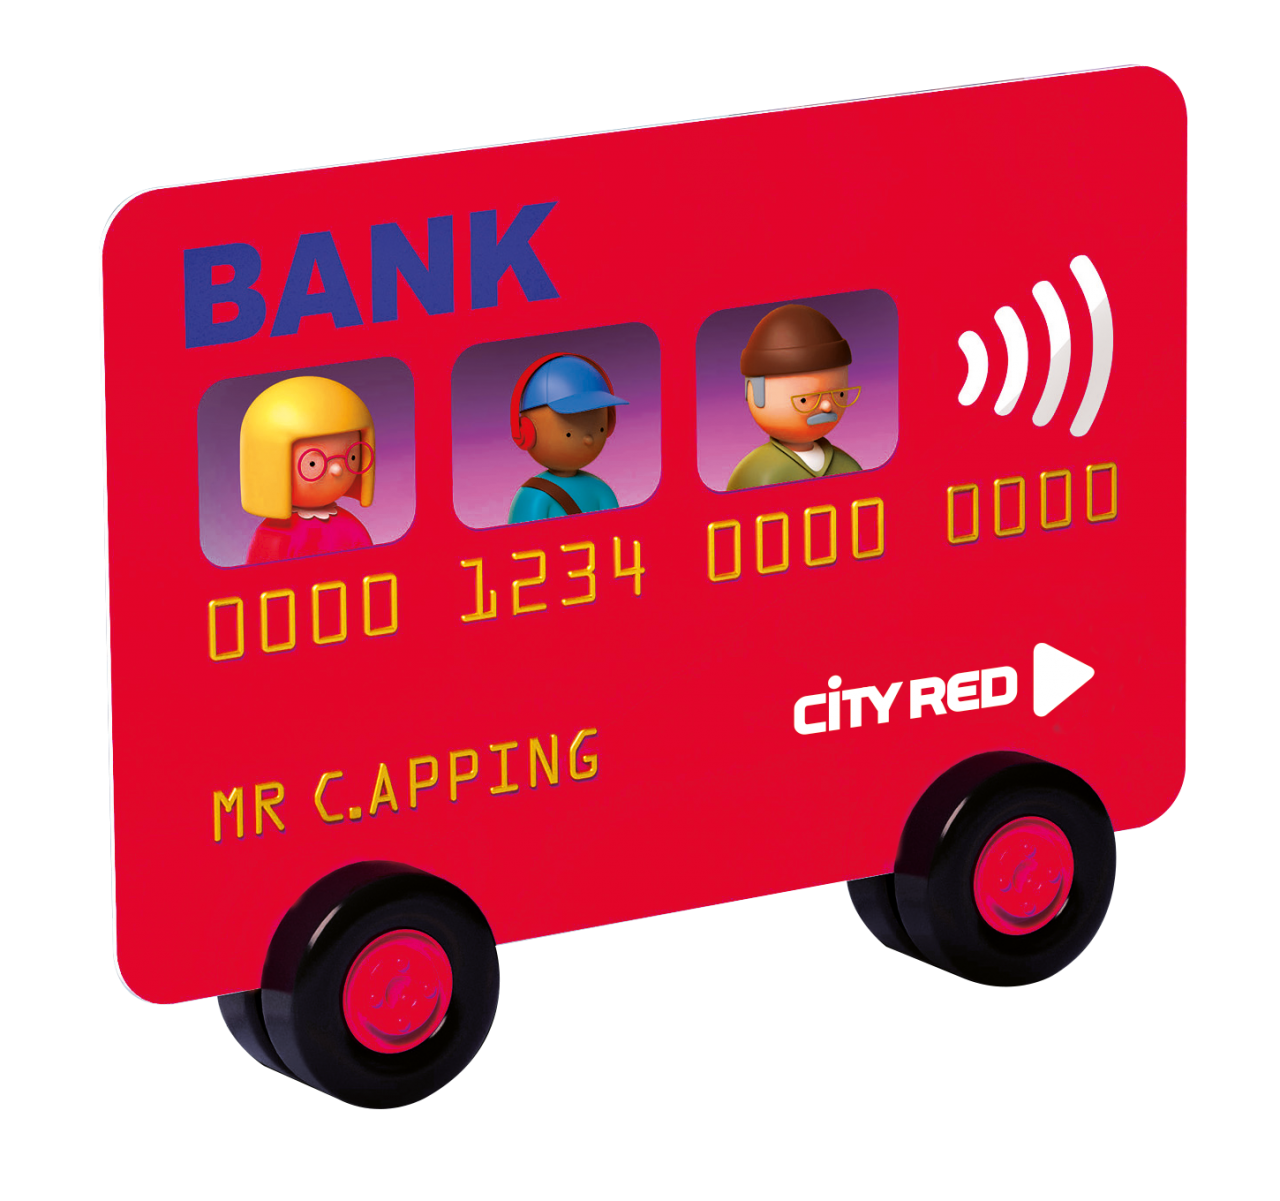 Picture of a bus as a contactless bank card